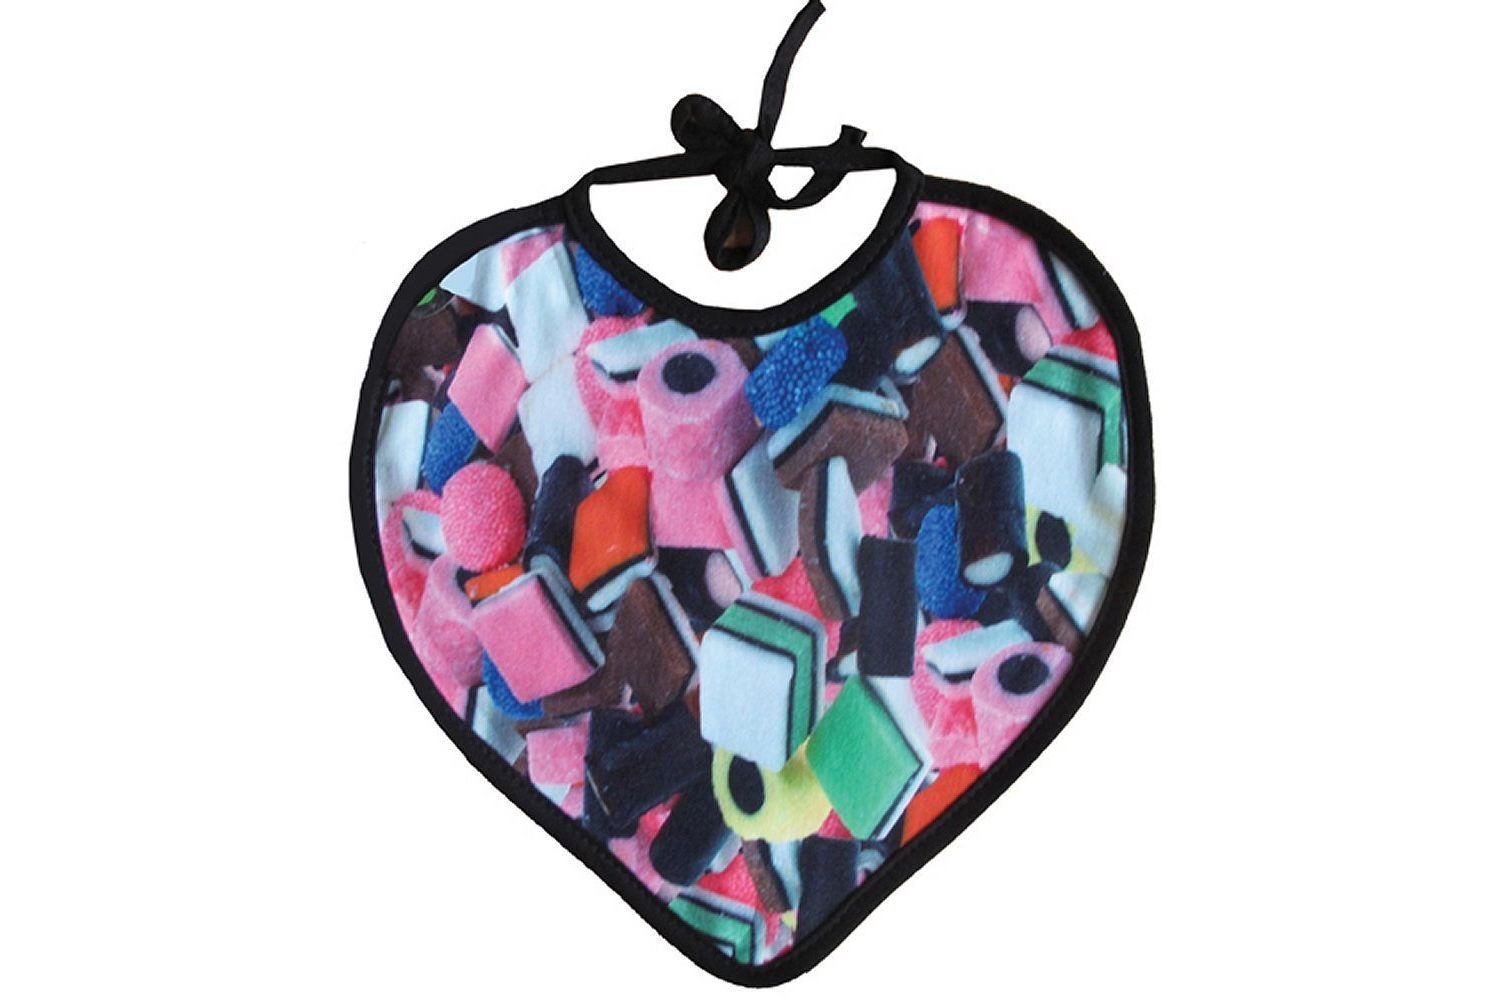 Xplorys Sweetheart Baby Bib - Choose your favourite sweets!!! - Allsorts